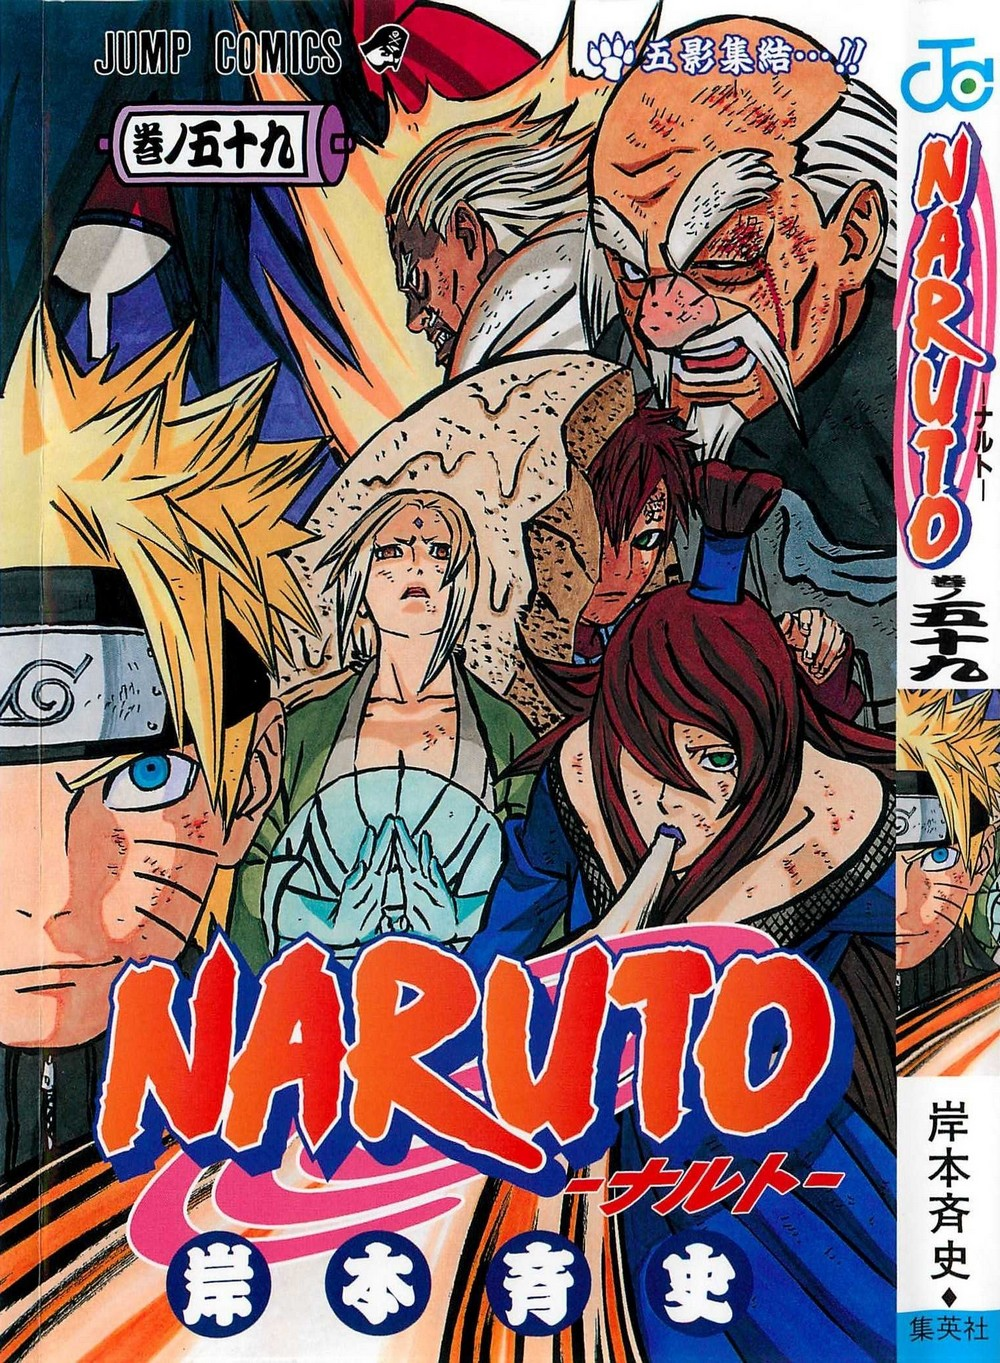 Couvertures Naruto - Page 2 526256aaxoviDG